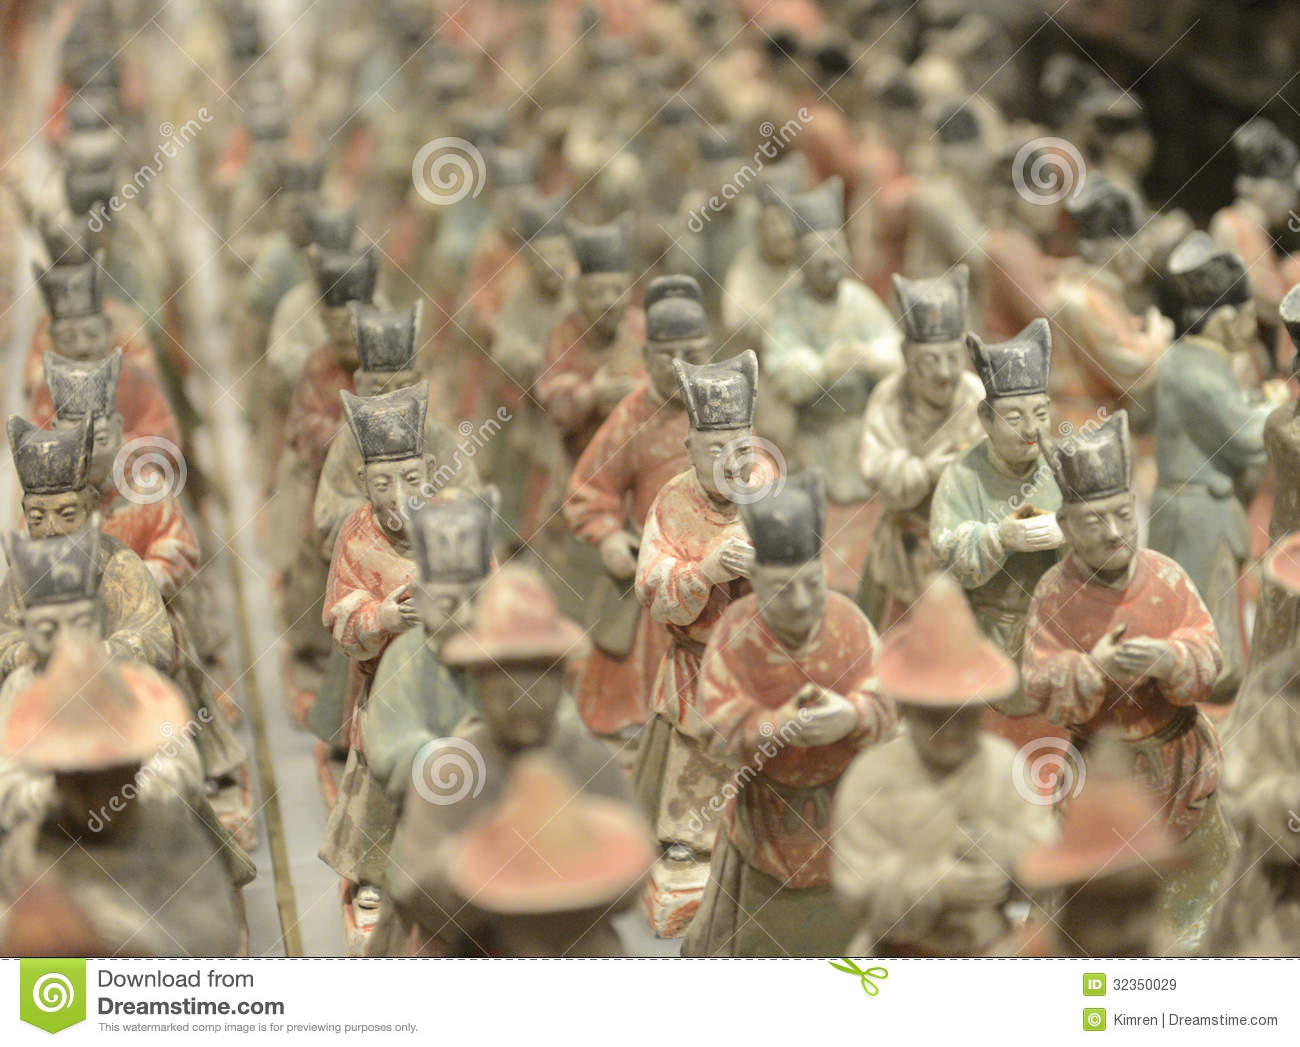 Tang figurines